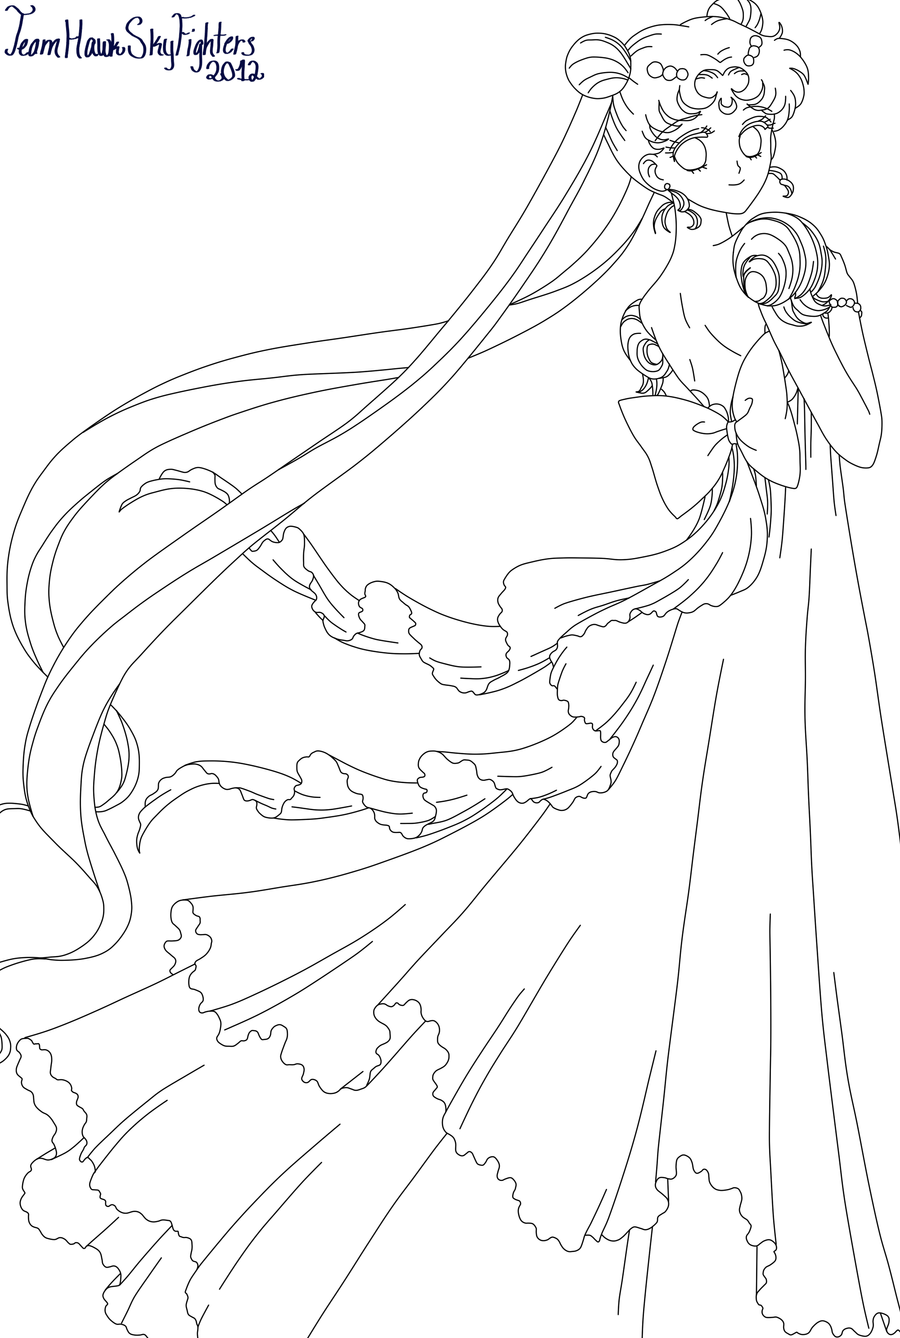 Princess serenity by levi ackerman heicho on deviantart for Serenity coloring pages